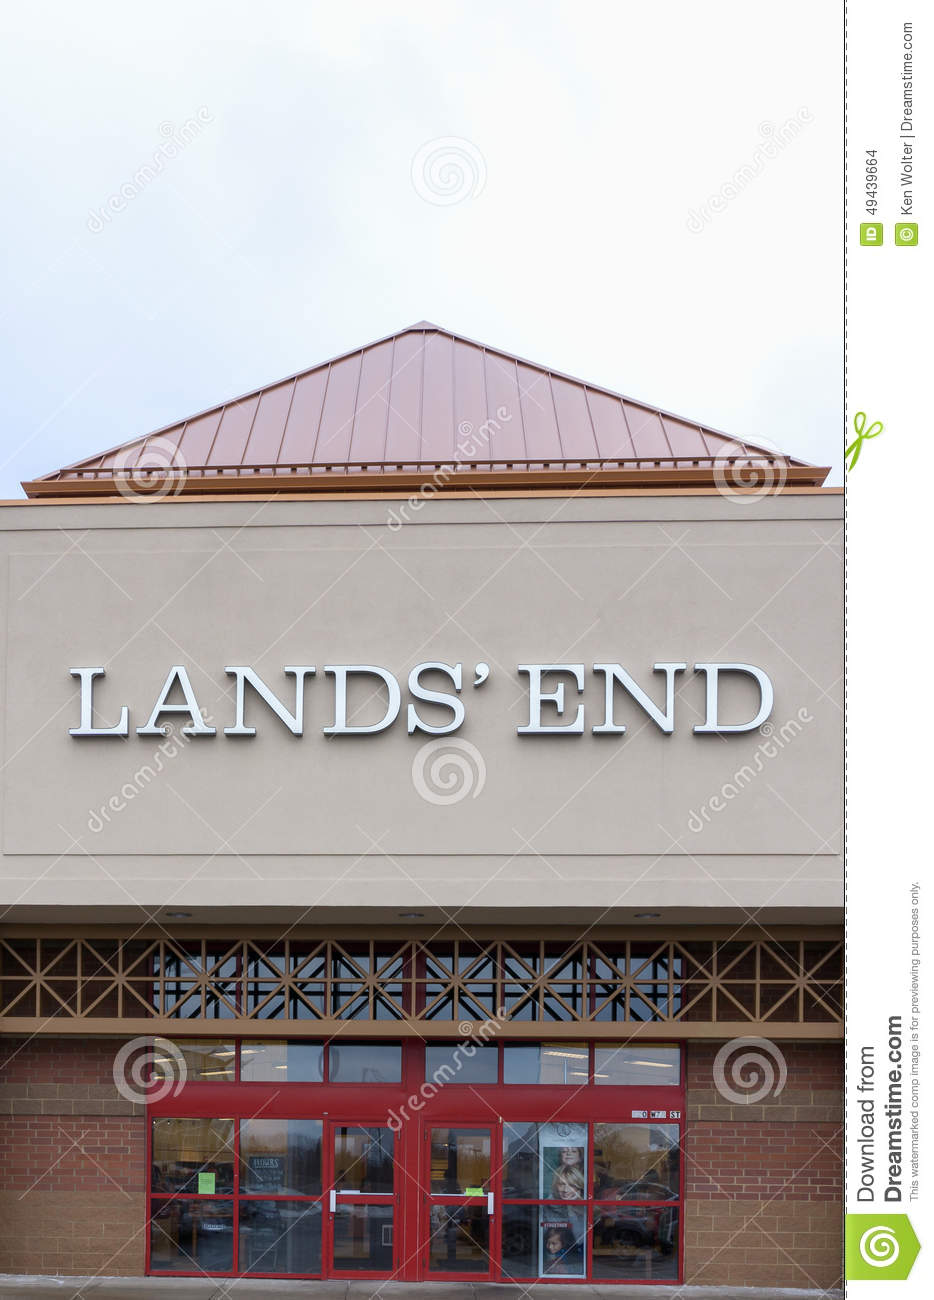 Lands End Clothing Store Online Clothing Stores